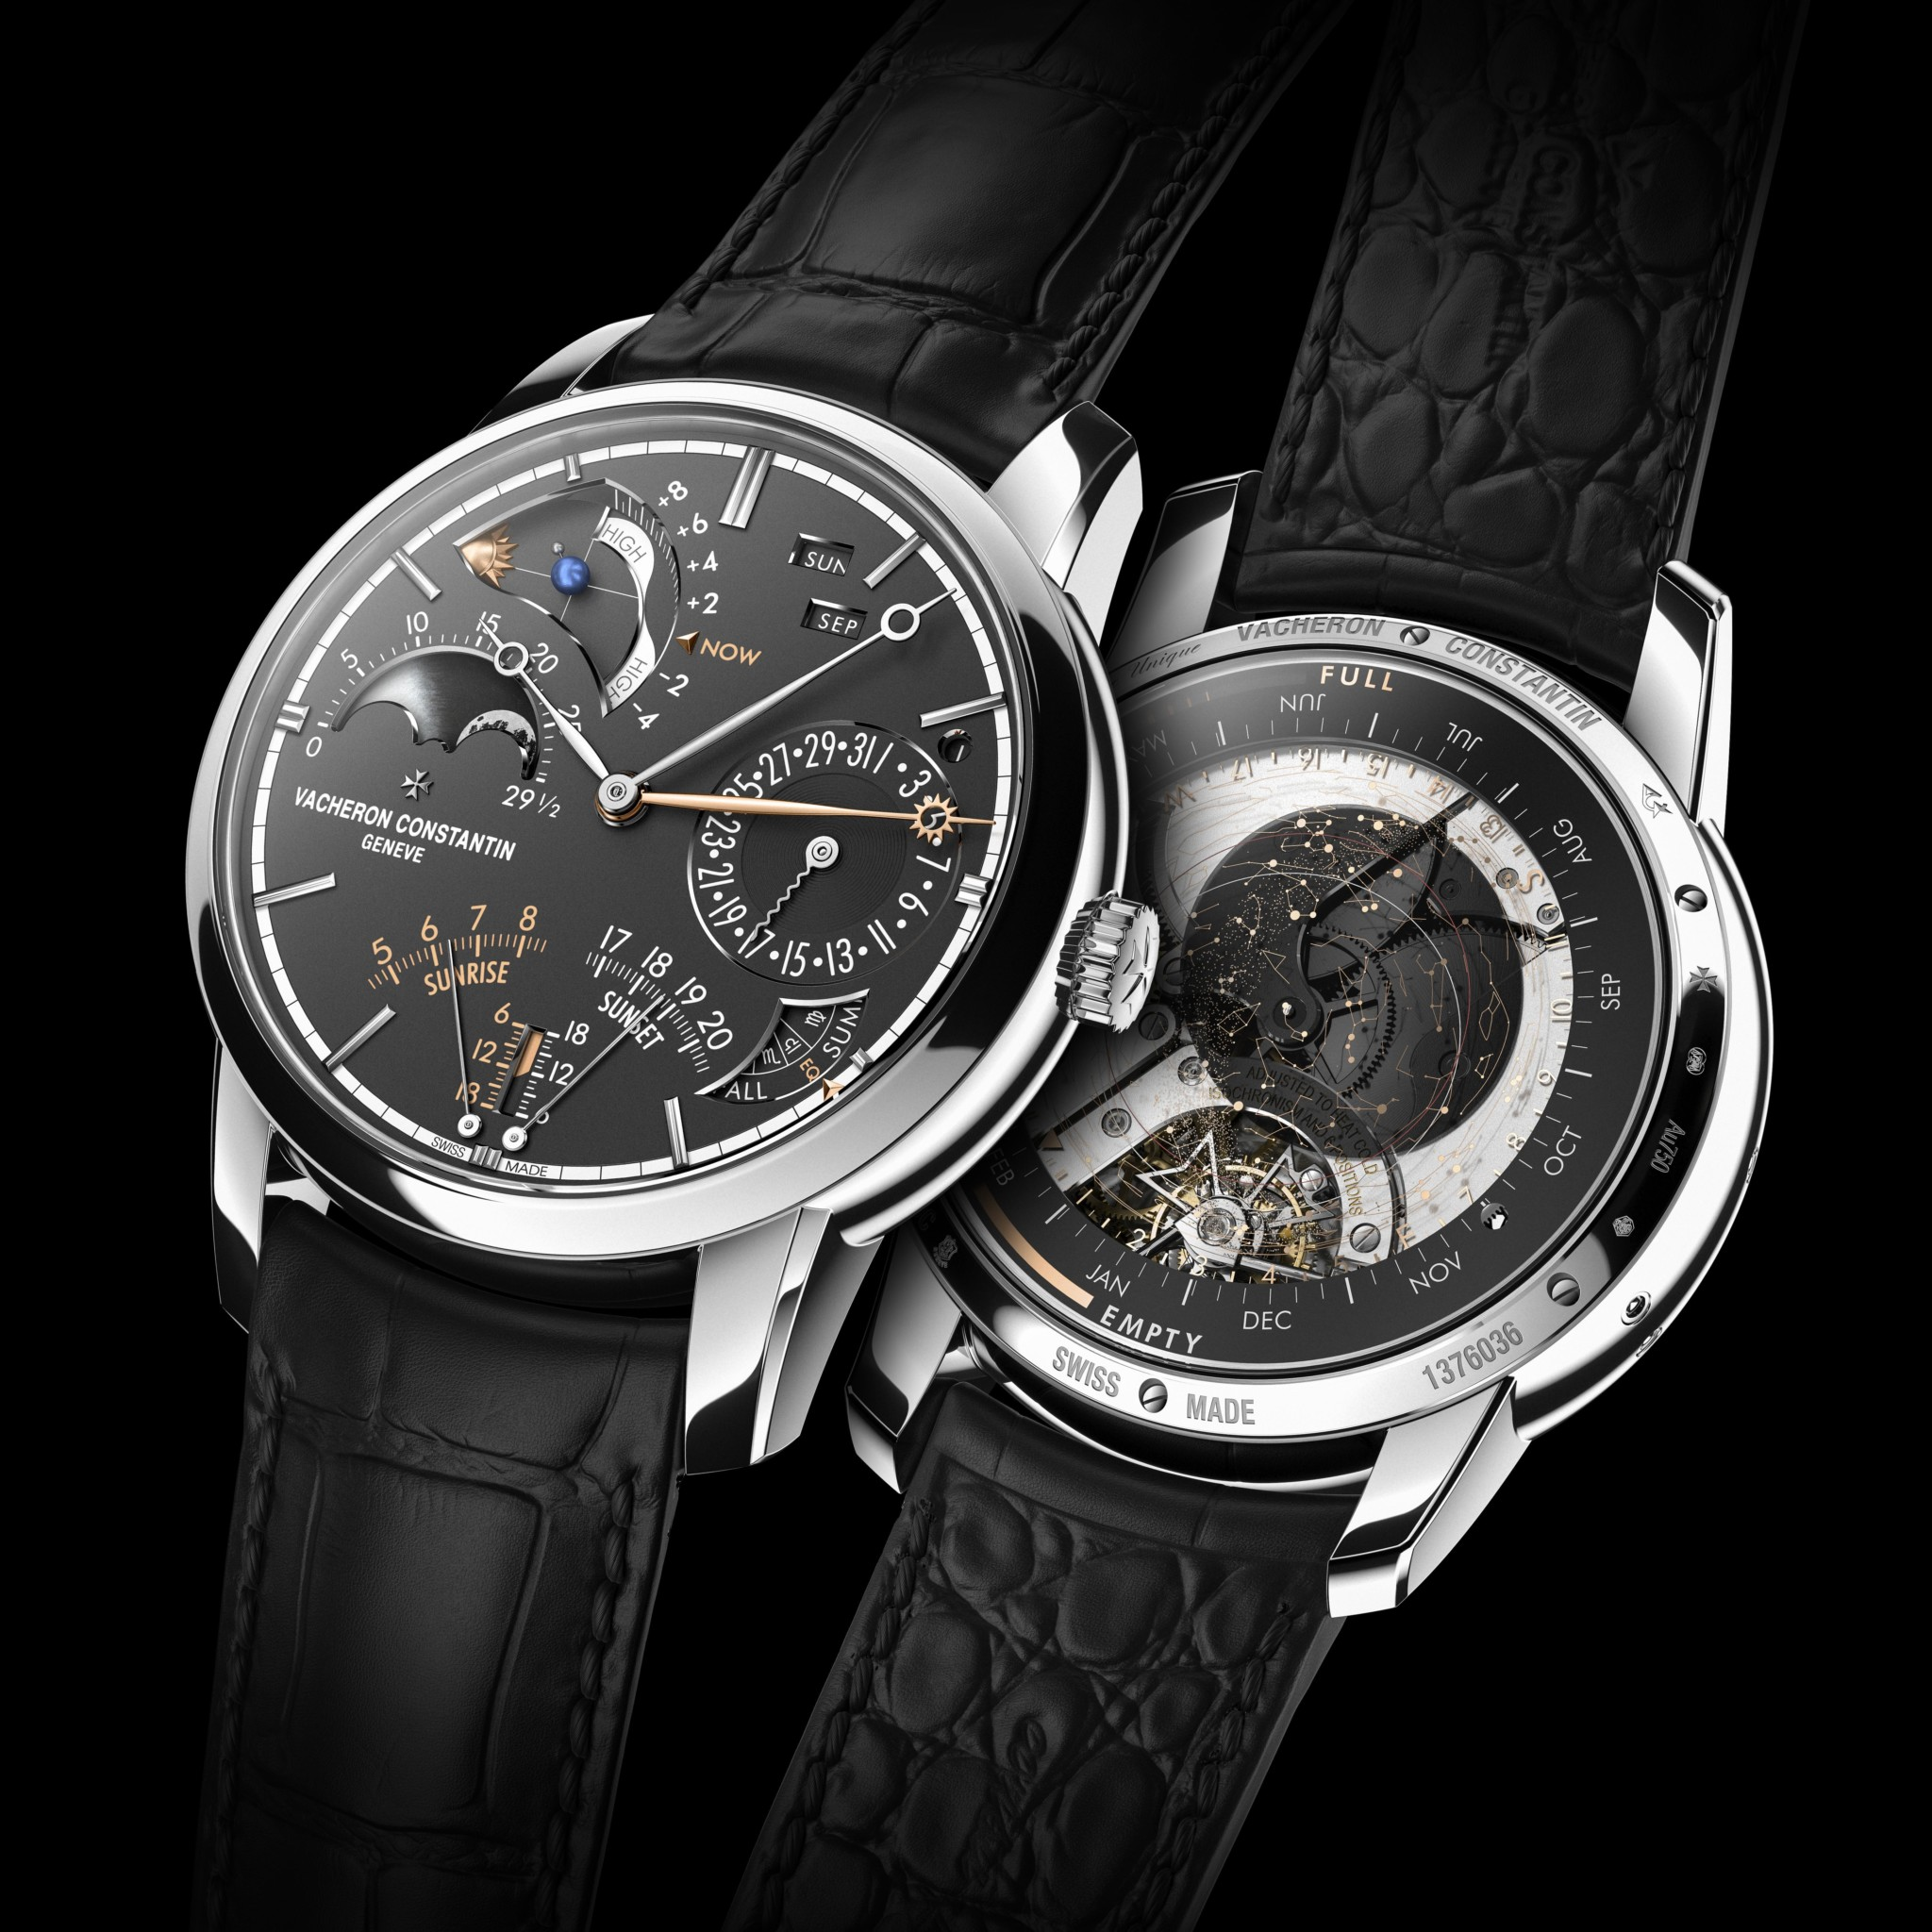 Mechanical Exception Watch Prize: Vacheron Constantin, Les Cabinotiers Celestia Astronomical Grand Complication 3600.